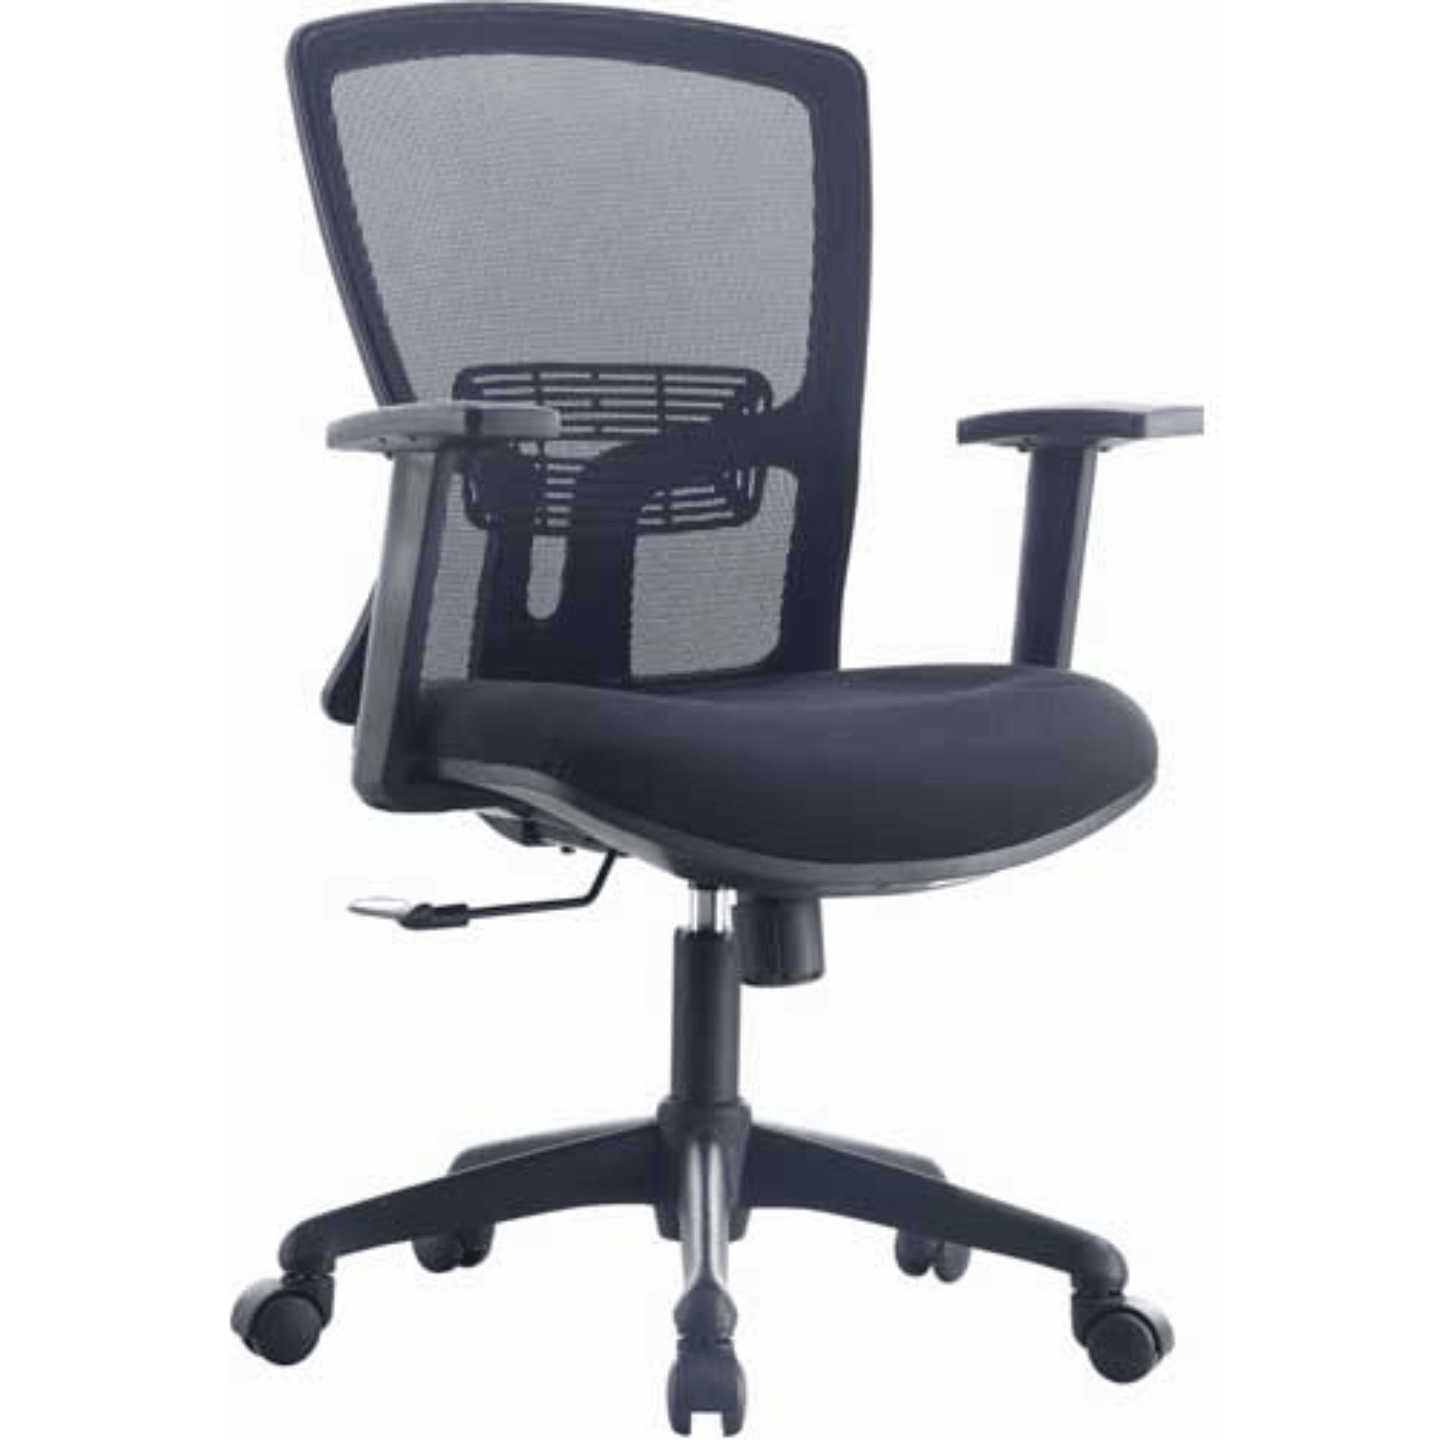 Work from Home Chair JAZZ